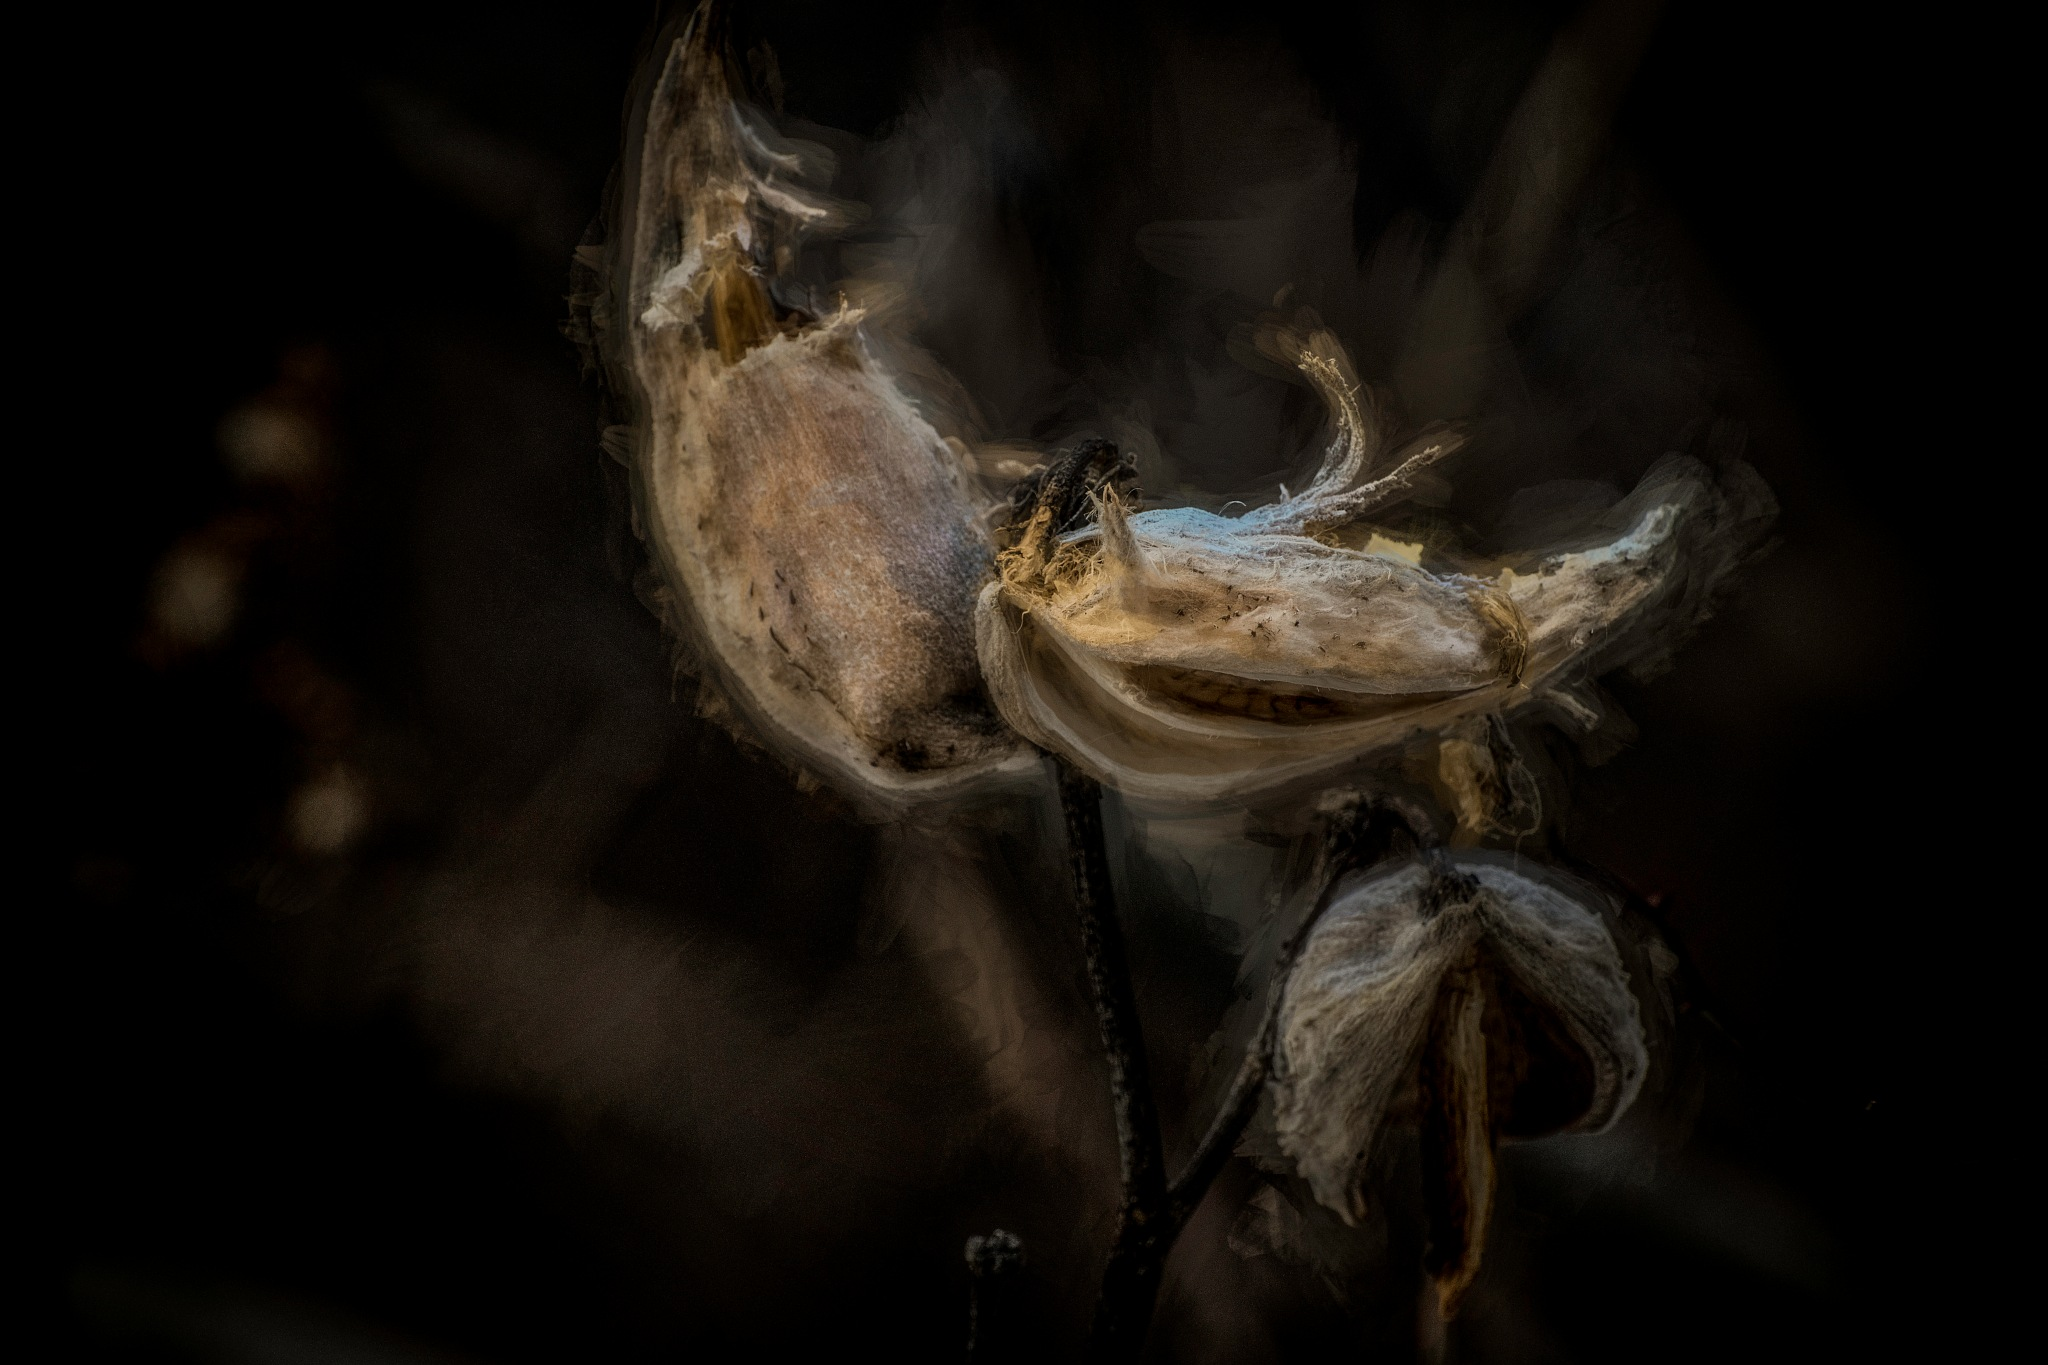 Final Decay by JohnEllingson